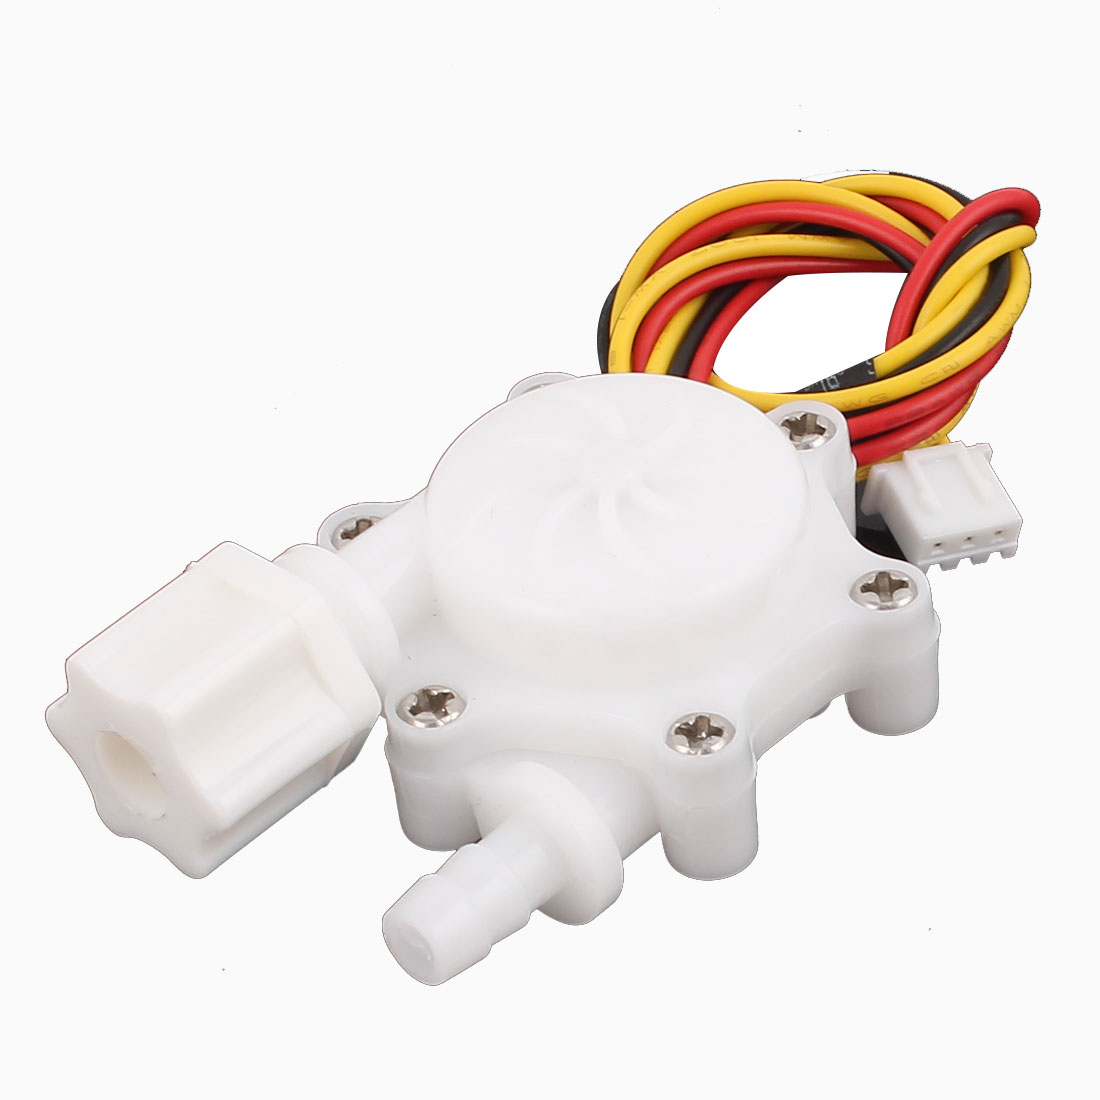 G1/4 Male Thread 6mm Outlet Outer Dia Water Flow Sensor 0.15-1.5L/min SEN-HW06FA